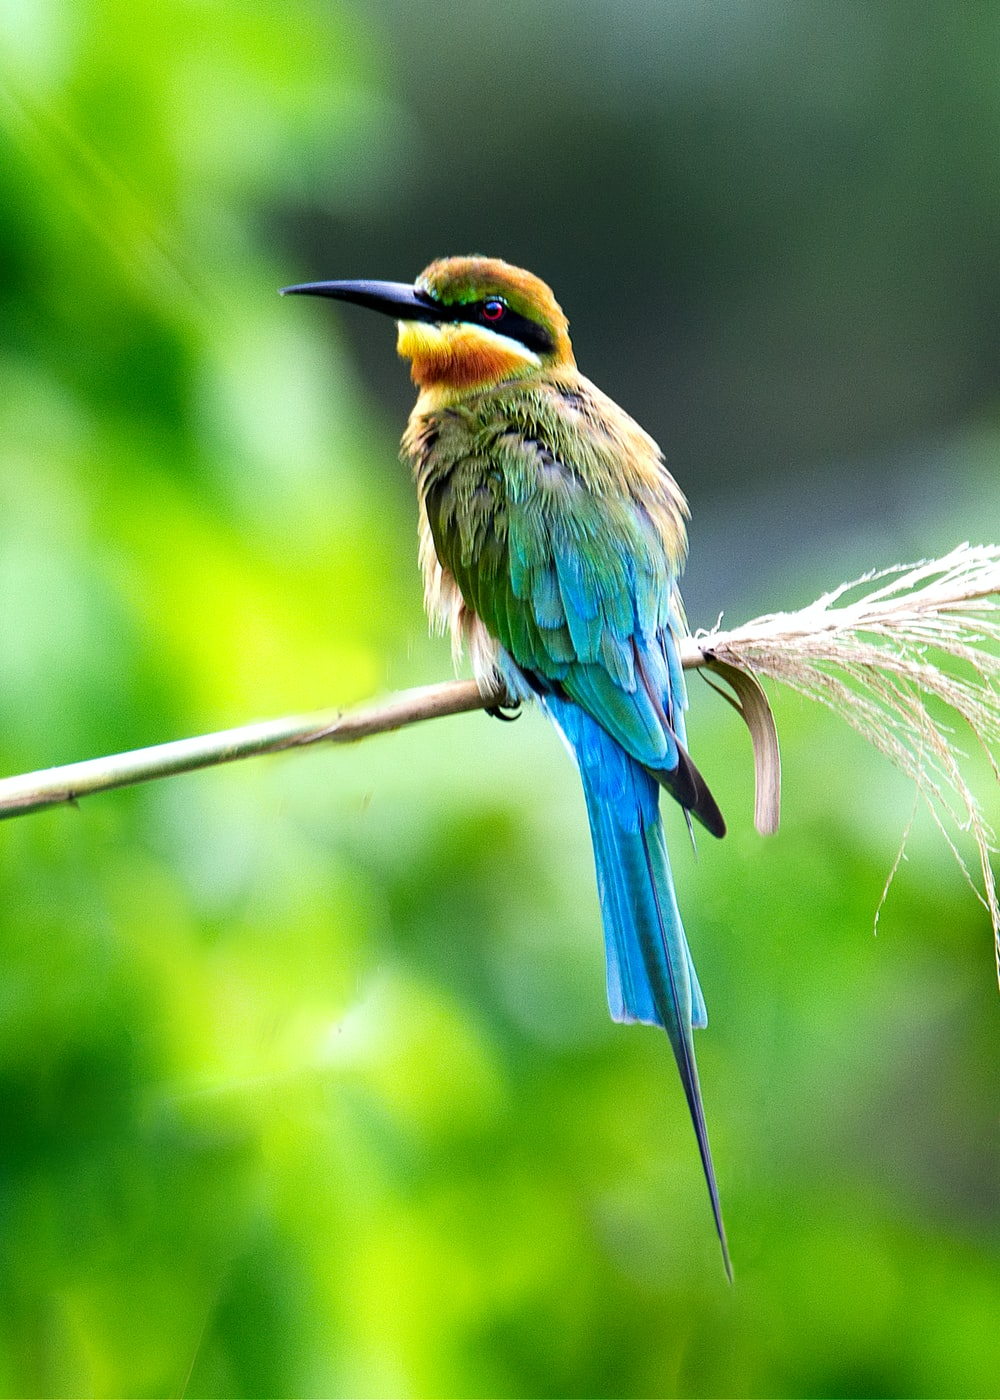 500 Bird Pictures Hd Download Free Images On Unsplash